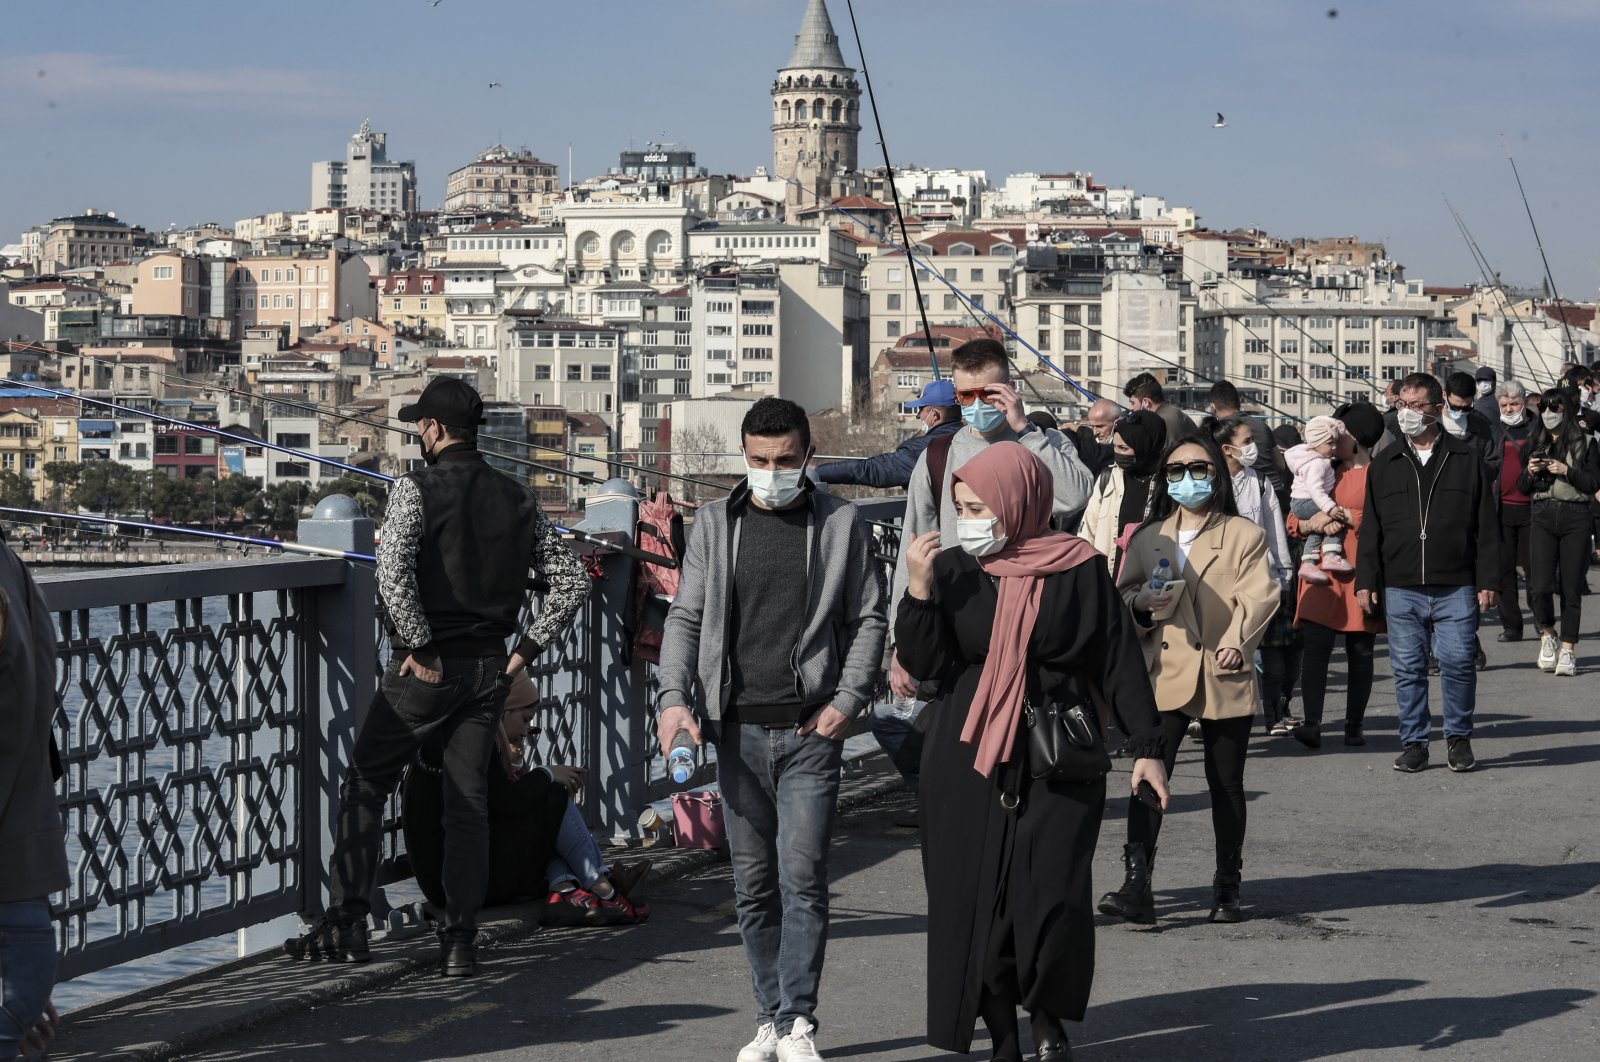 People wearing protective masks walk in Eminönü district, in Istanbul, Turkey, March 15, 2021. (DHA PHOTO)